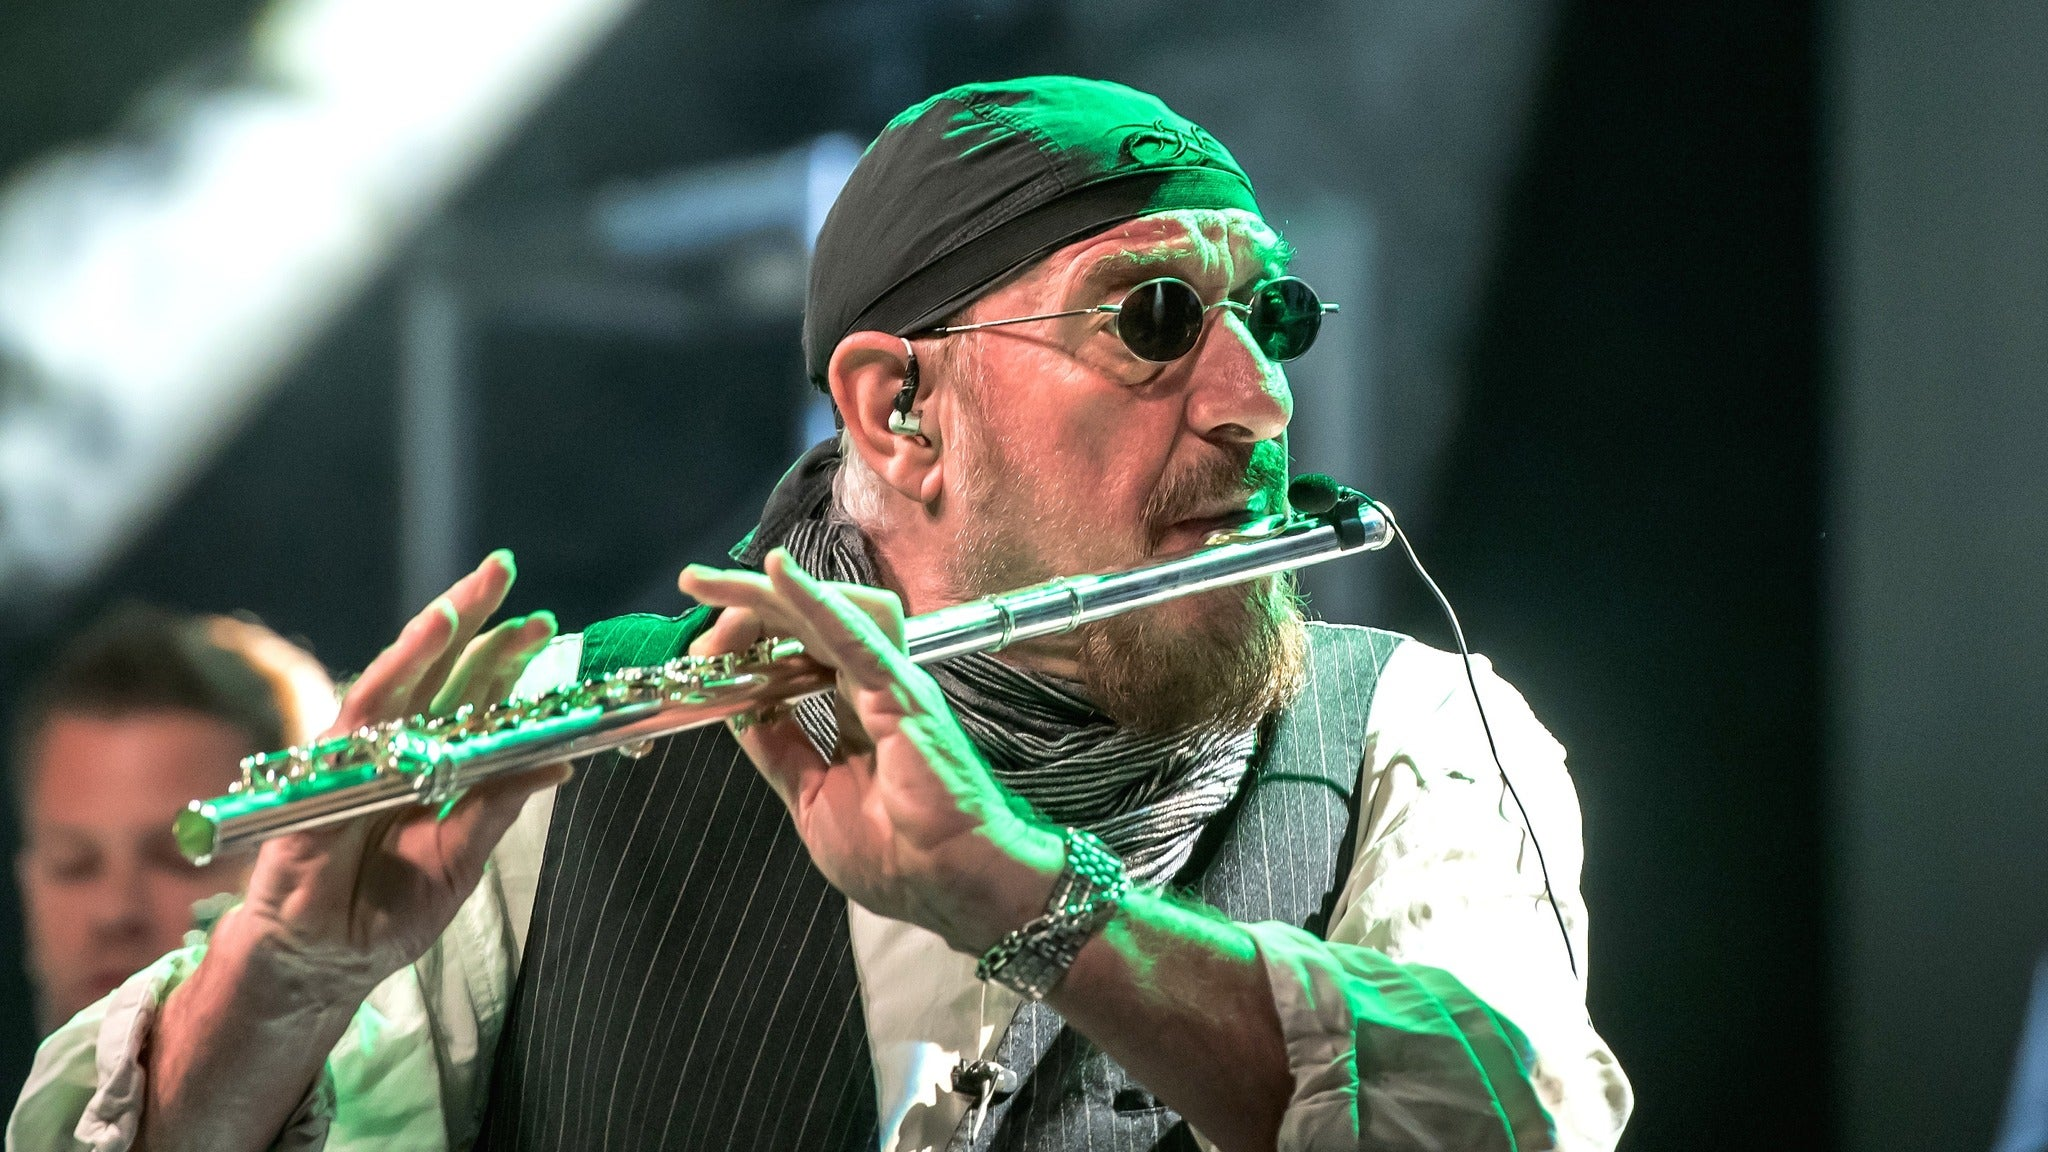 JETHRO TULL by Ian Anderson at The Chicago Theatre